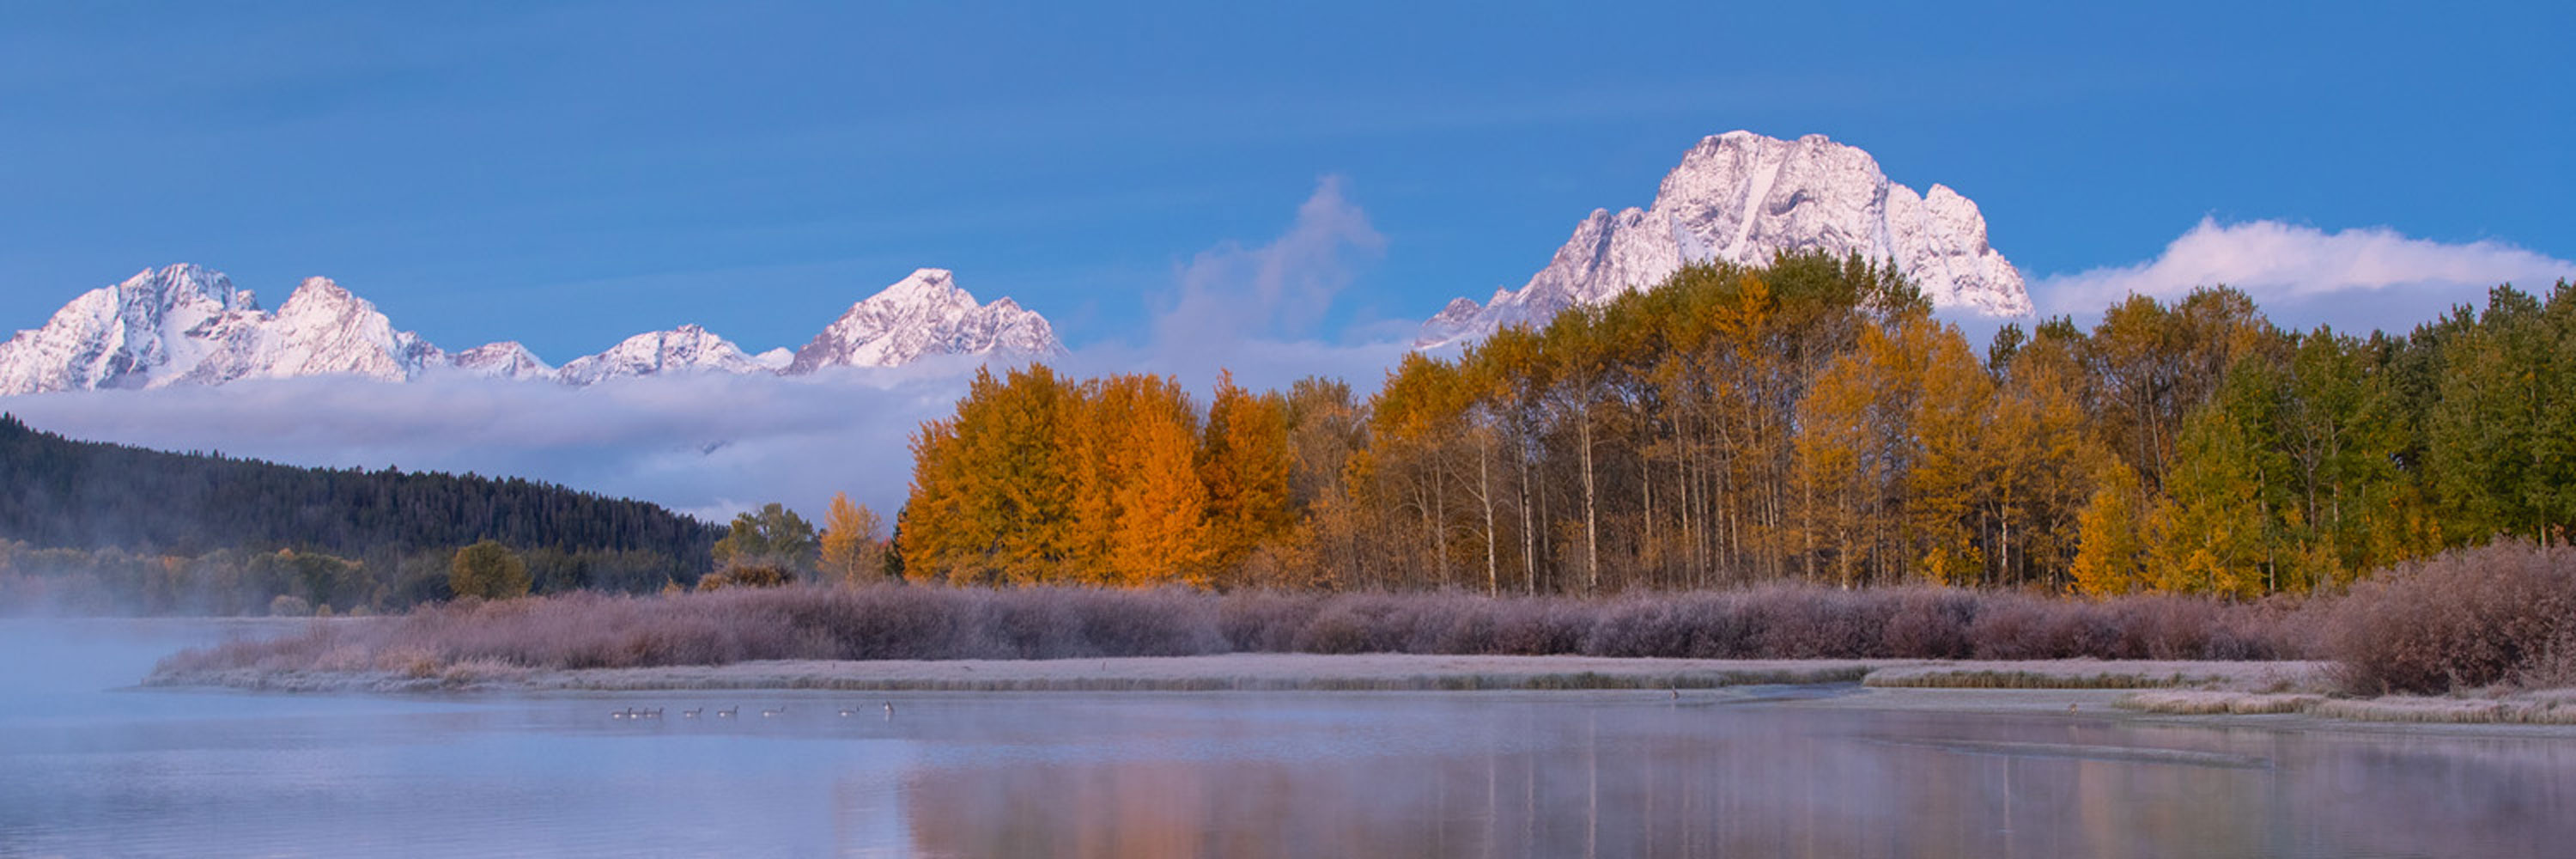 oxbow bend, sunrise, autumn, fog, Tetons, Grand Teton, photo